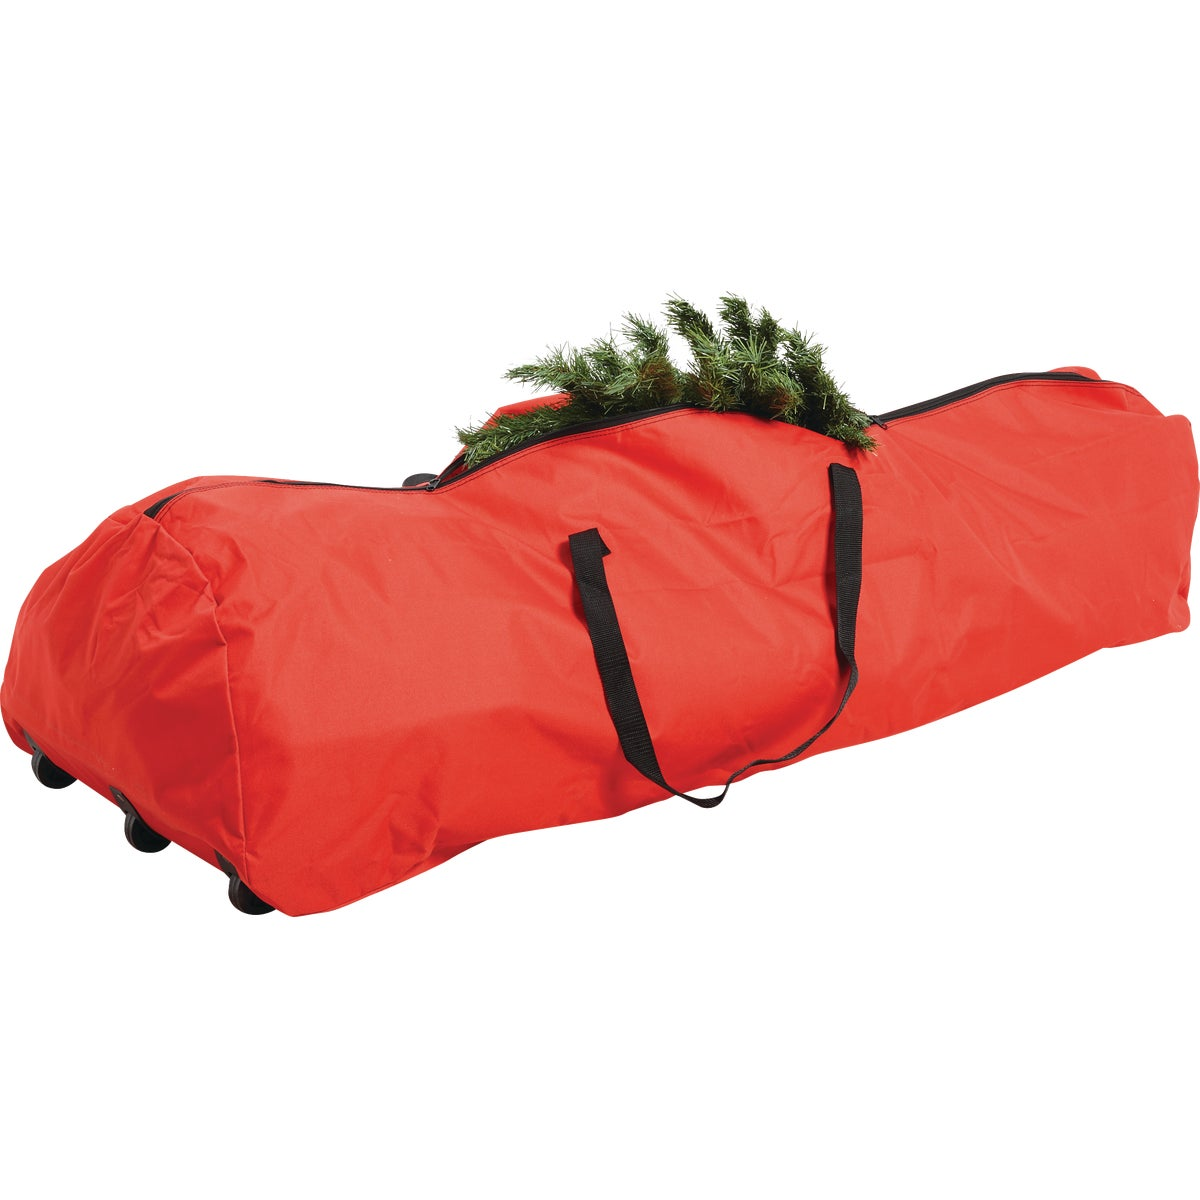 9FT ROLLING TREE BAG - 11595-106 by Dyno Seasonal Sol